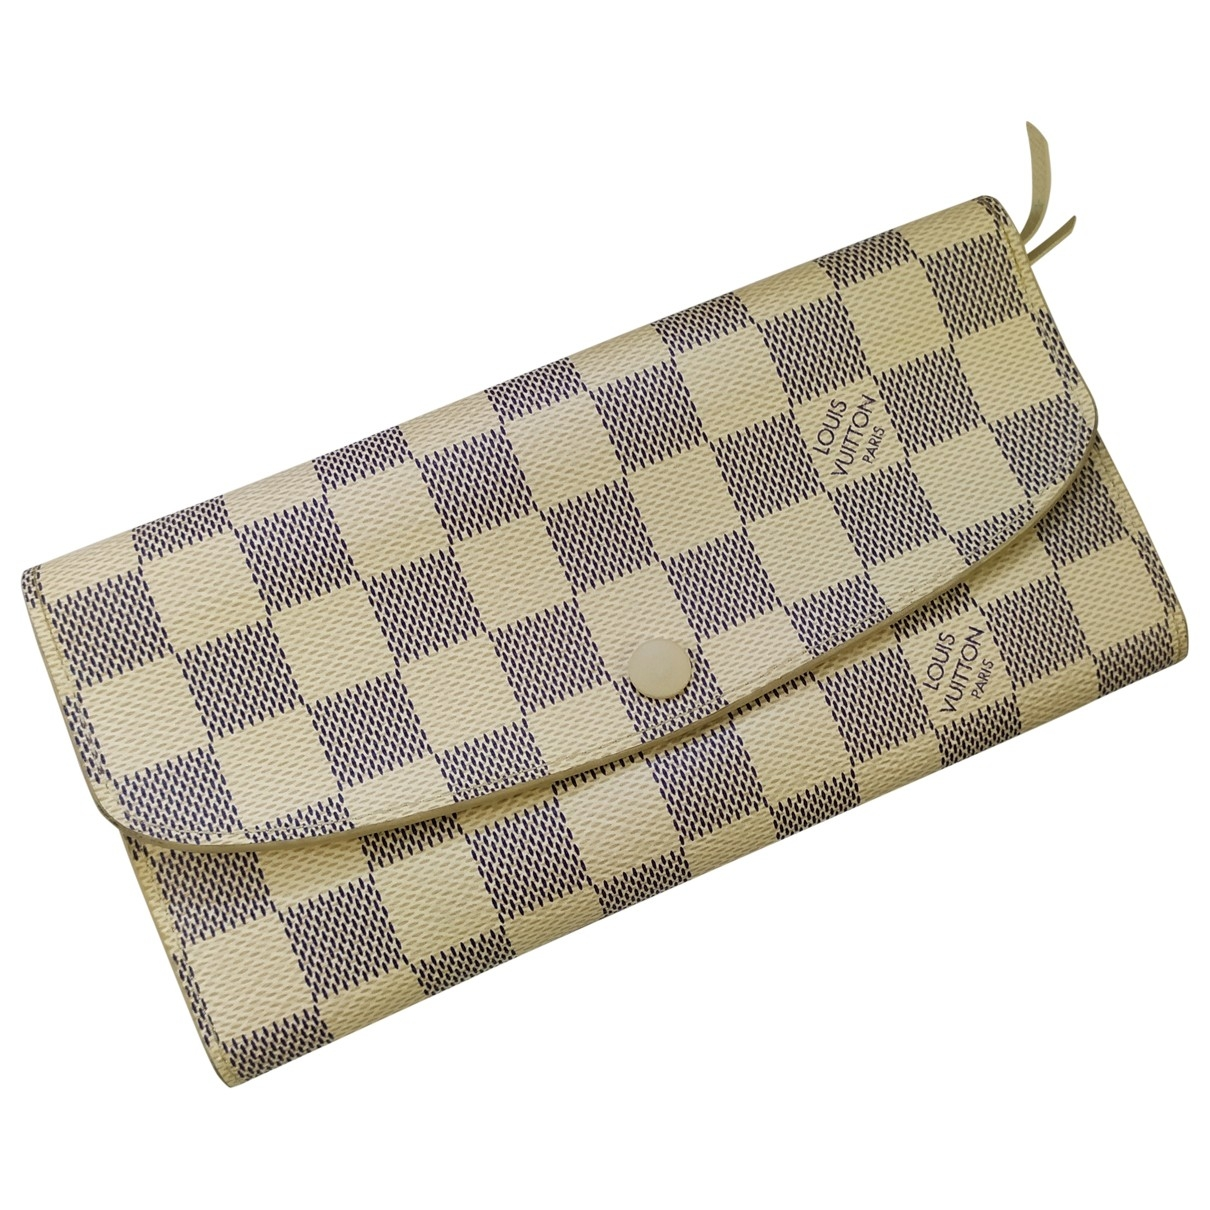 Louis Vuitton Emilie Ecru Cloth wallet for Women \N